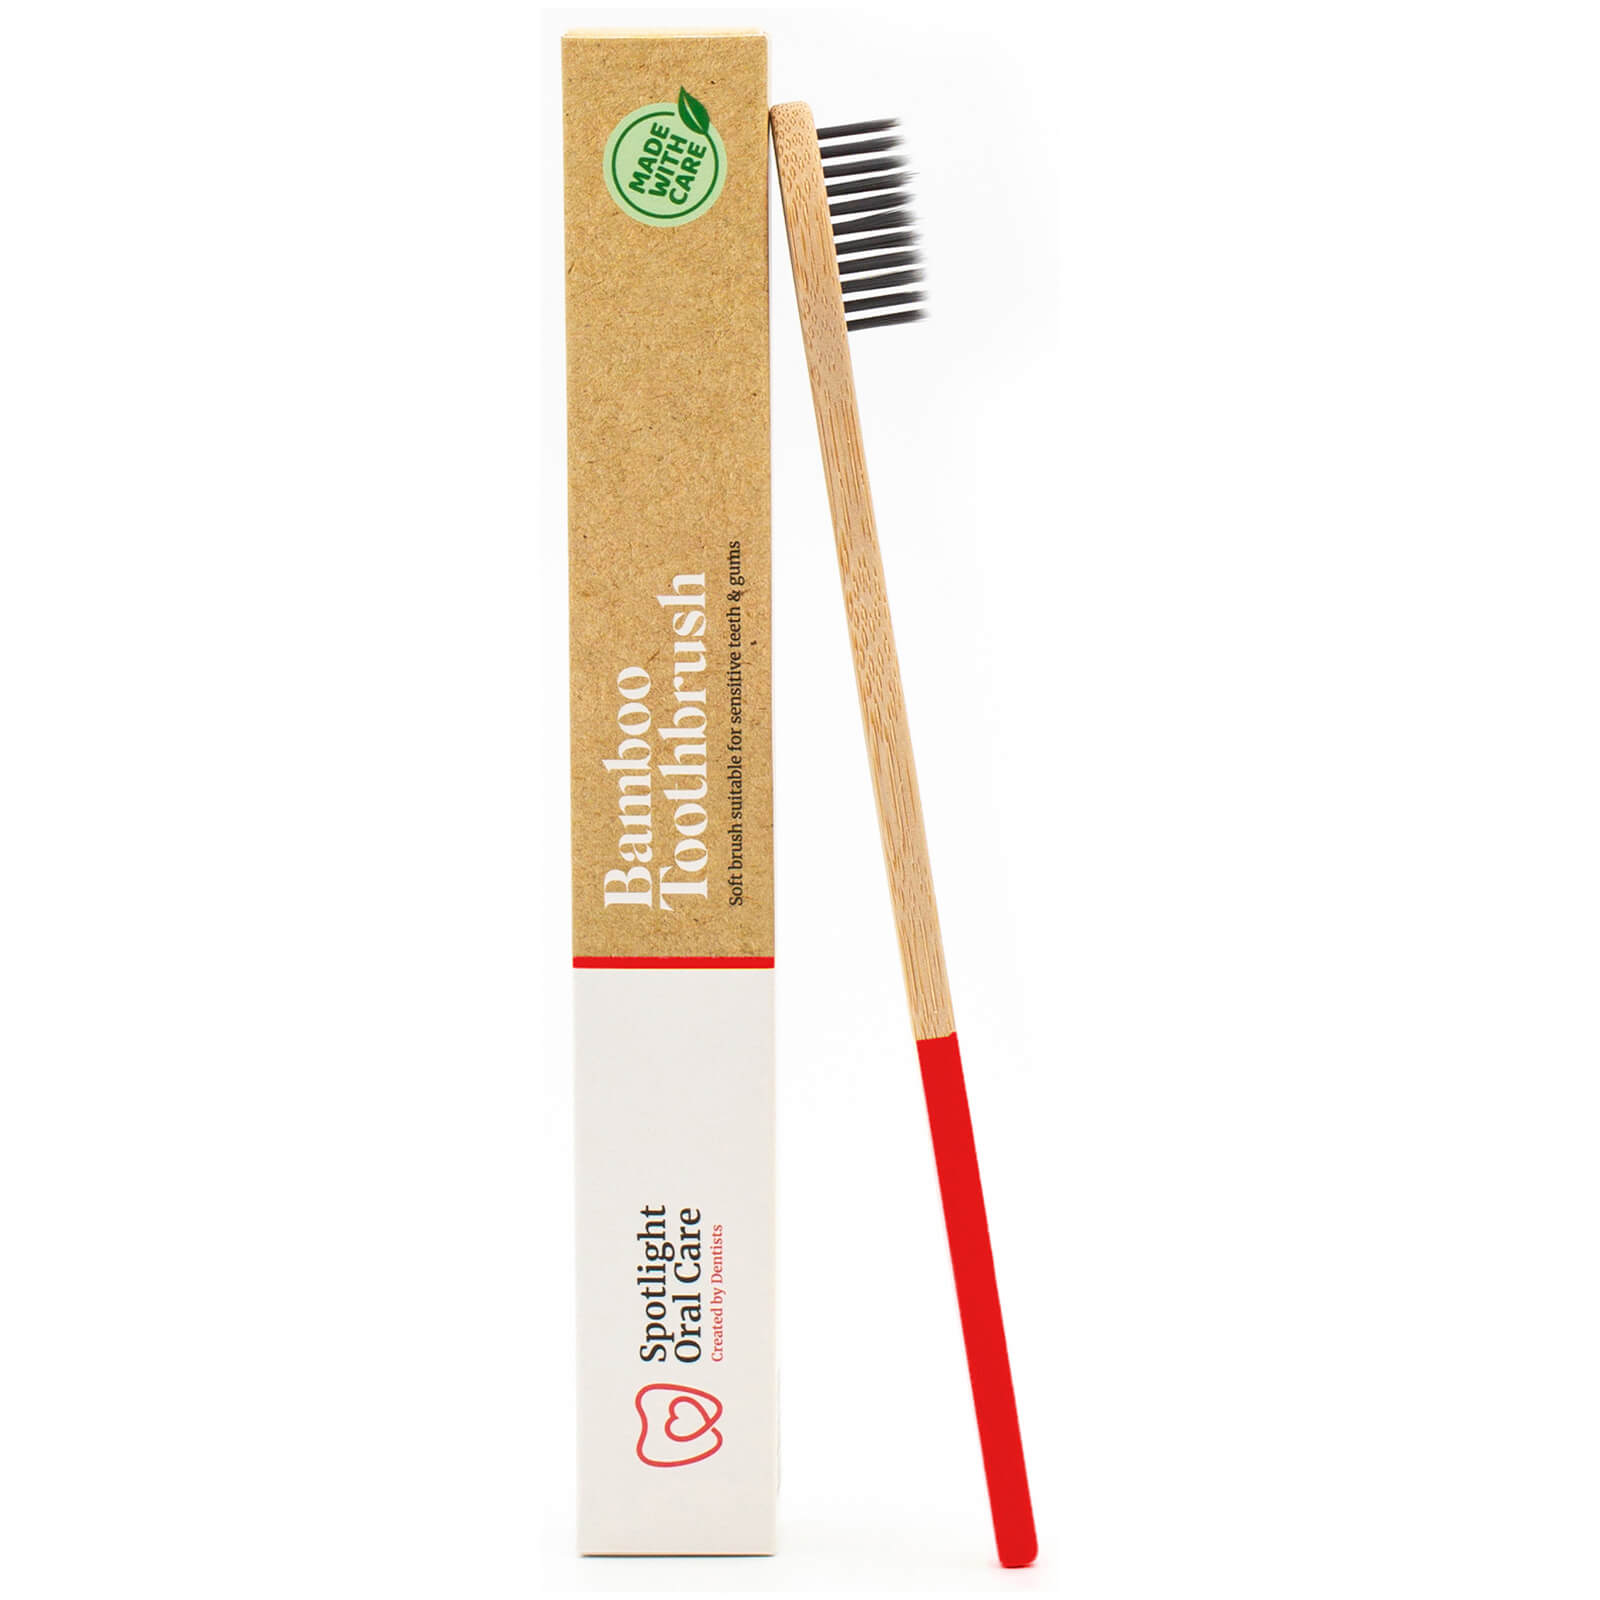 Spotlight Oral Care Bamboo Toothbrush - Red